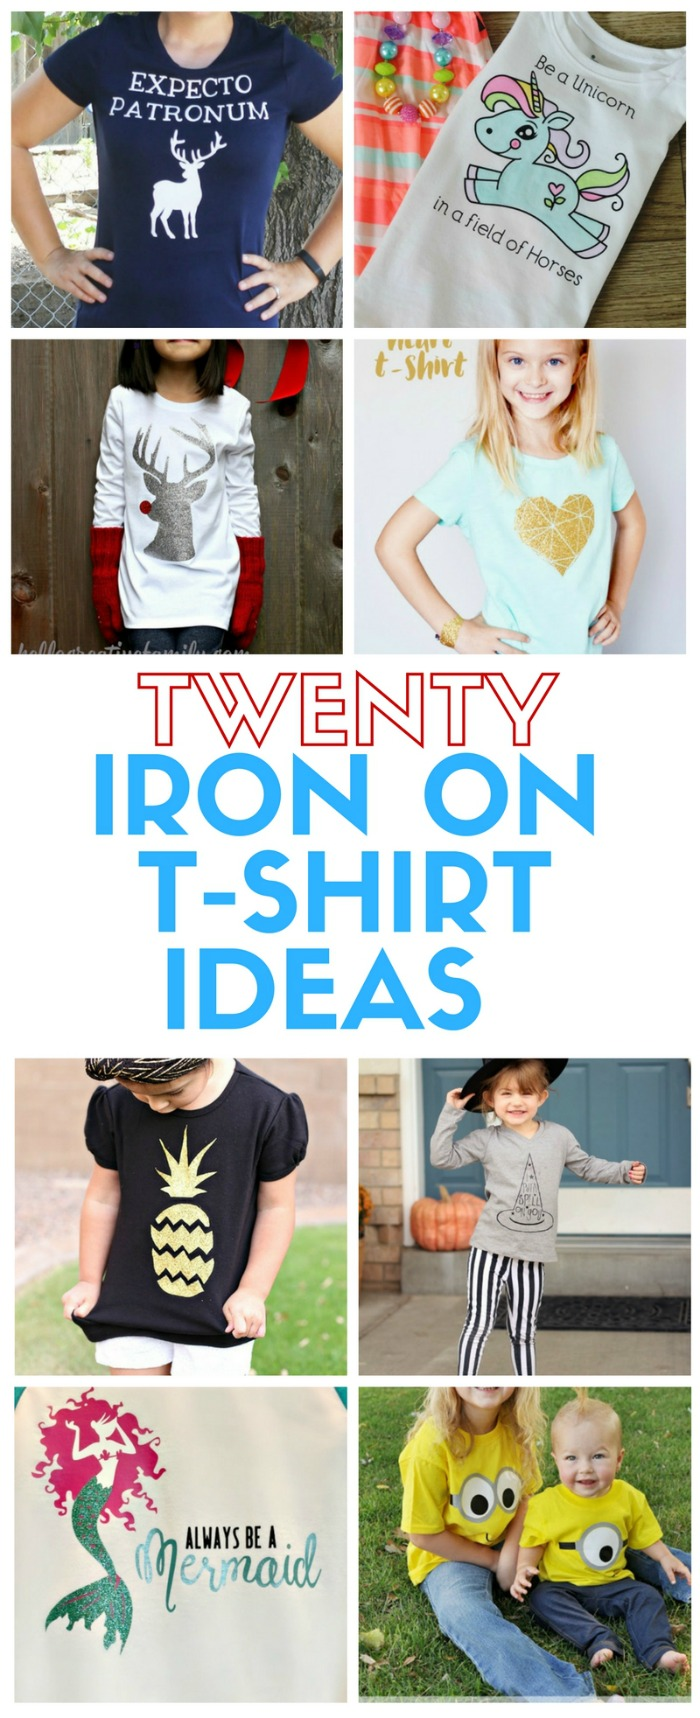 Simple DIY craft tutorial ideas to design and make your new favorite t-shirt using heat transfer vinyl. Fashion you can wear with confidence!